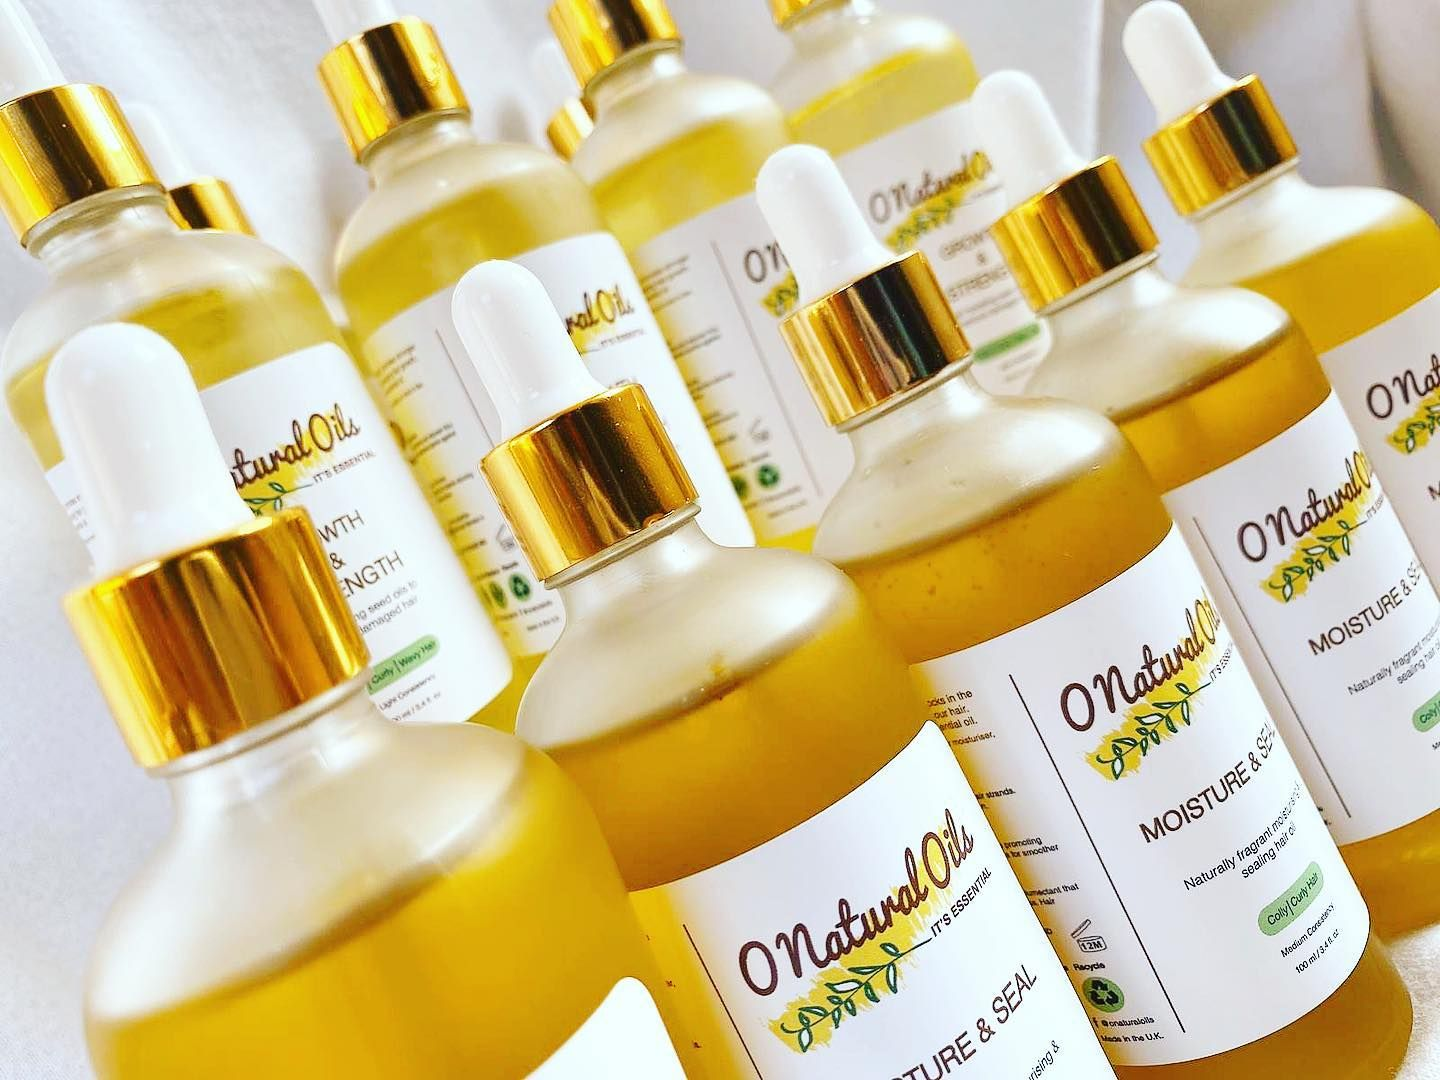 NEW STOCK !! 🤩🤩🤩***** Brand new stock of ONaturalOils Moisture & Seal and Growth & Strength, ready for purchase via @etsy 🛍  Link in bio☝️ . Get yours now! . . #onaturaloils #newstockalert #getyoursnow #hairoils #curlynaturalhair #smellsamazing #naturalista #naturalhairblogger #productsthatwork #hairgrowthtips #naturalhairjourneycontinues #productsforcurlyhair #kinksandcoils #kinkycoily #afrohaircare #naturalhairoils #4chairproducts #4chair #4bhair #4ahair #3chair #3bhair #3ahair #naturaltwa